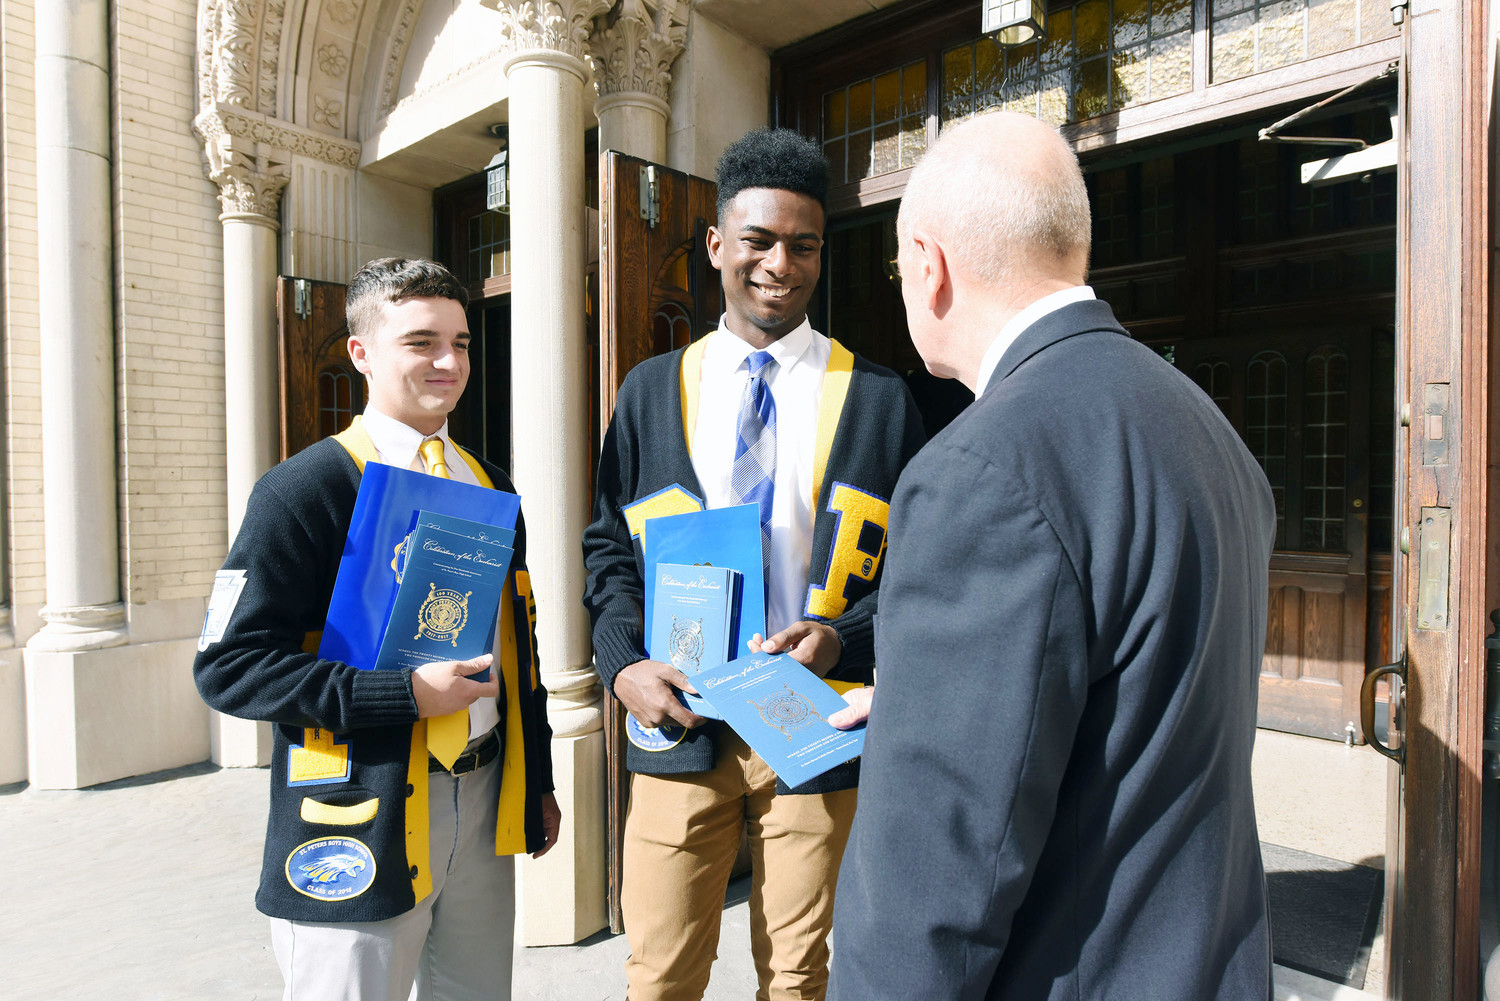 From left, St. Peter's Boys High School seniors Peter Rotondo and Jordan Fox distribute programs before the school's Centennial Mass at St. Peter's Church on Staten Island Oct. 22.